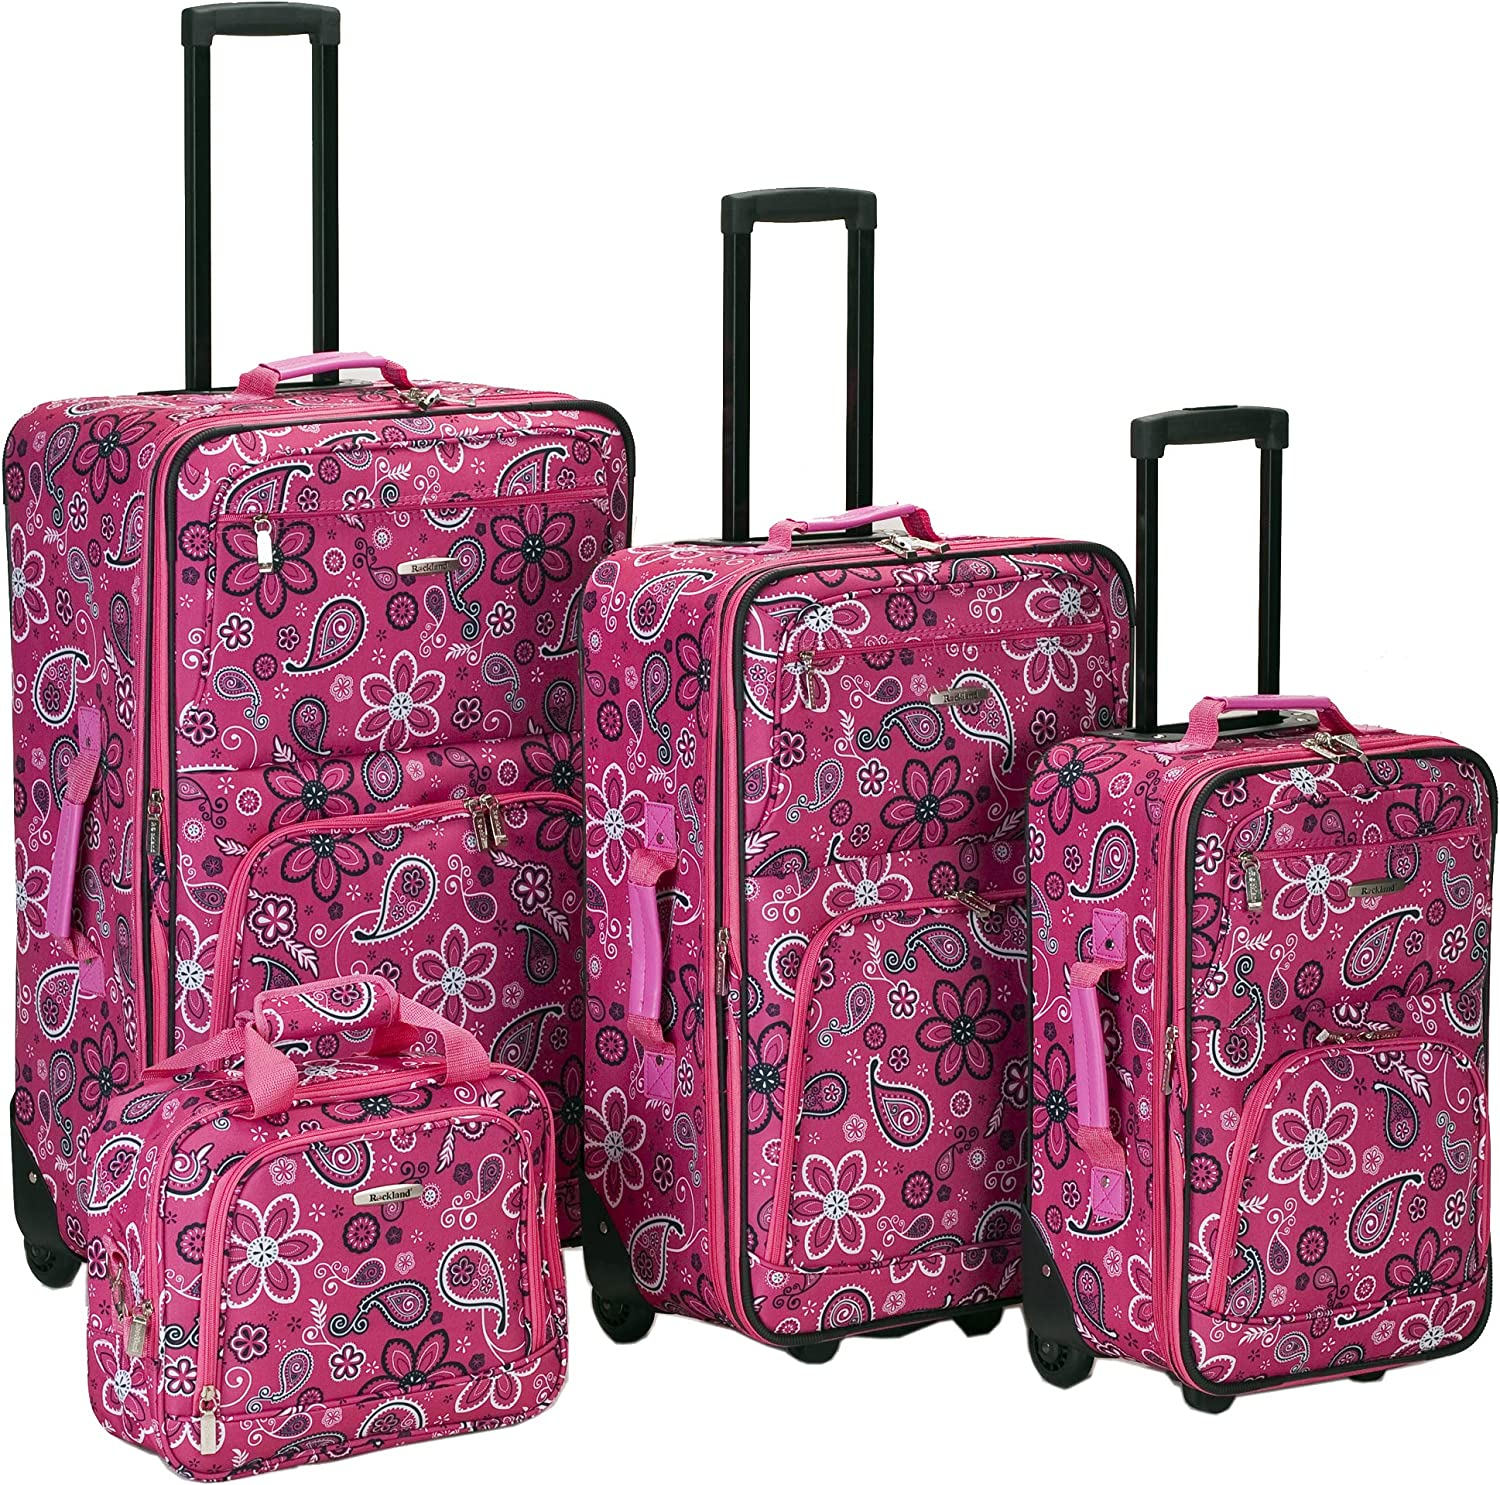 Deluxe Brand new Rockland Impulse 4-Piece Softside Upright Pink Band Set Luggage